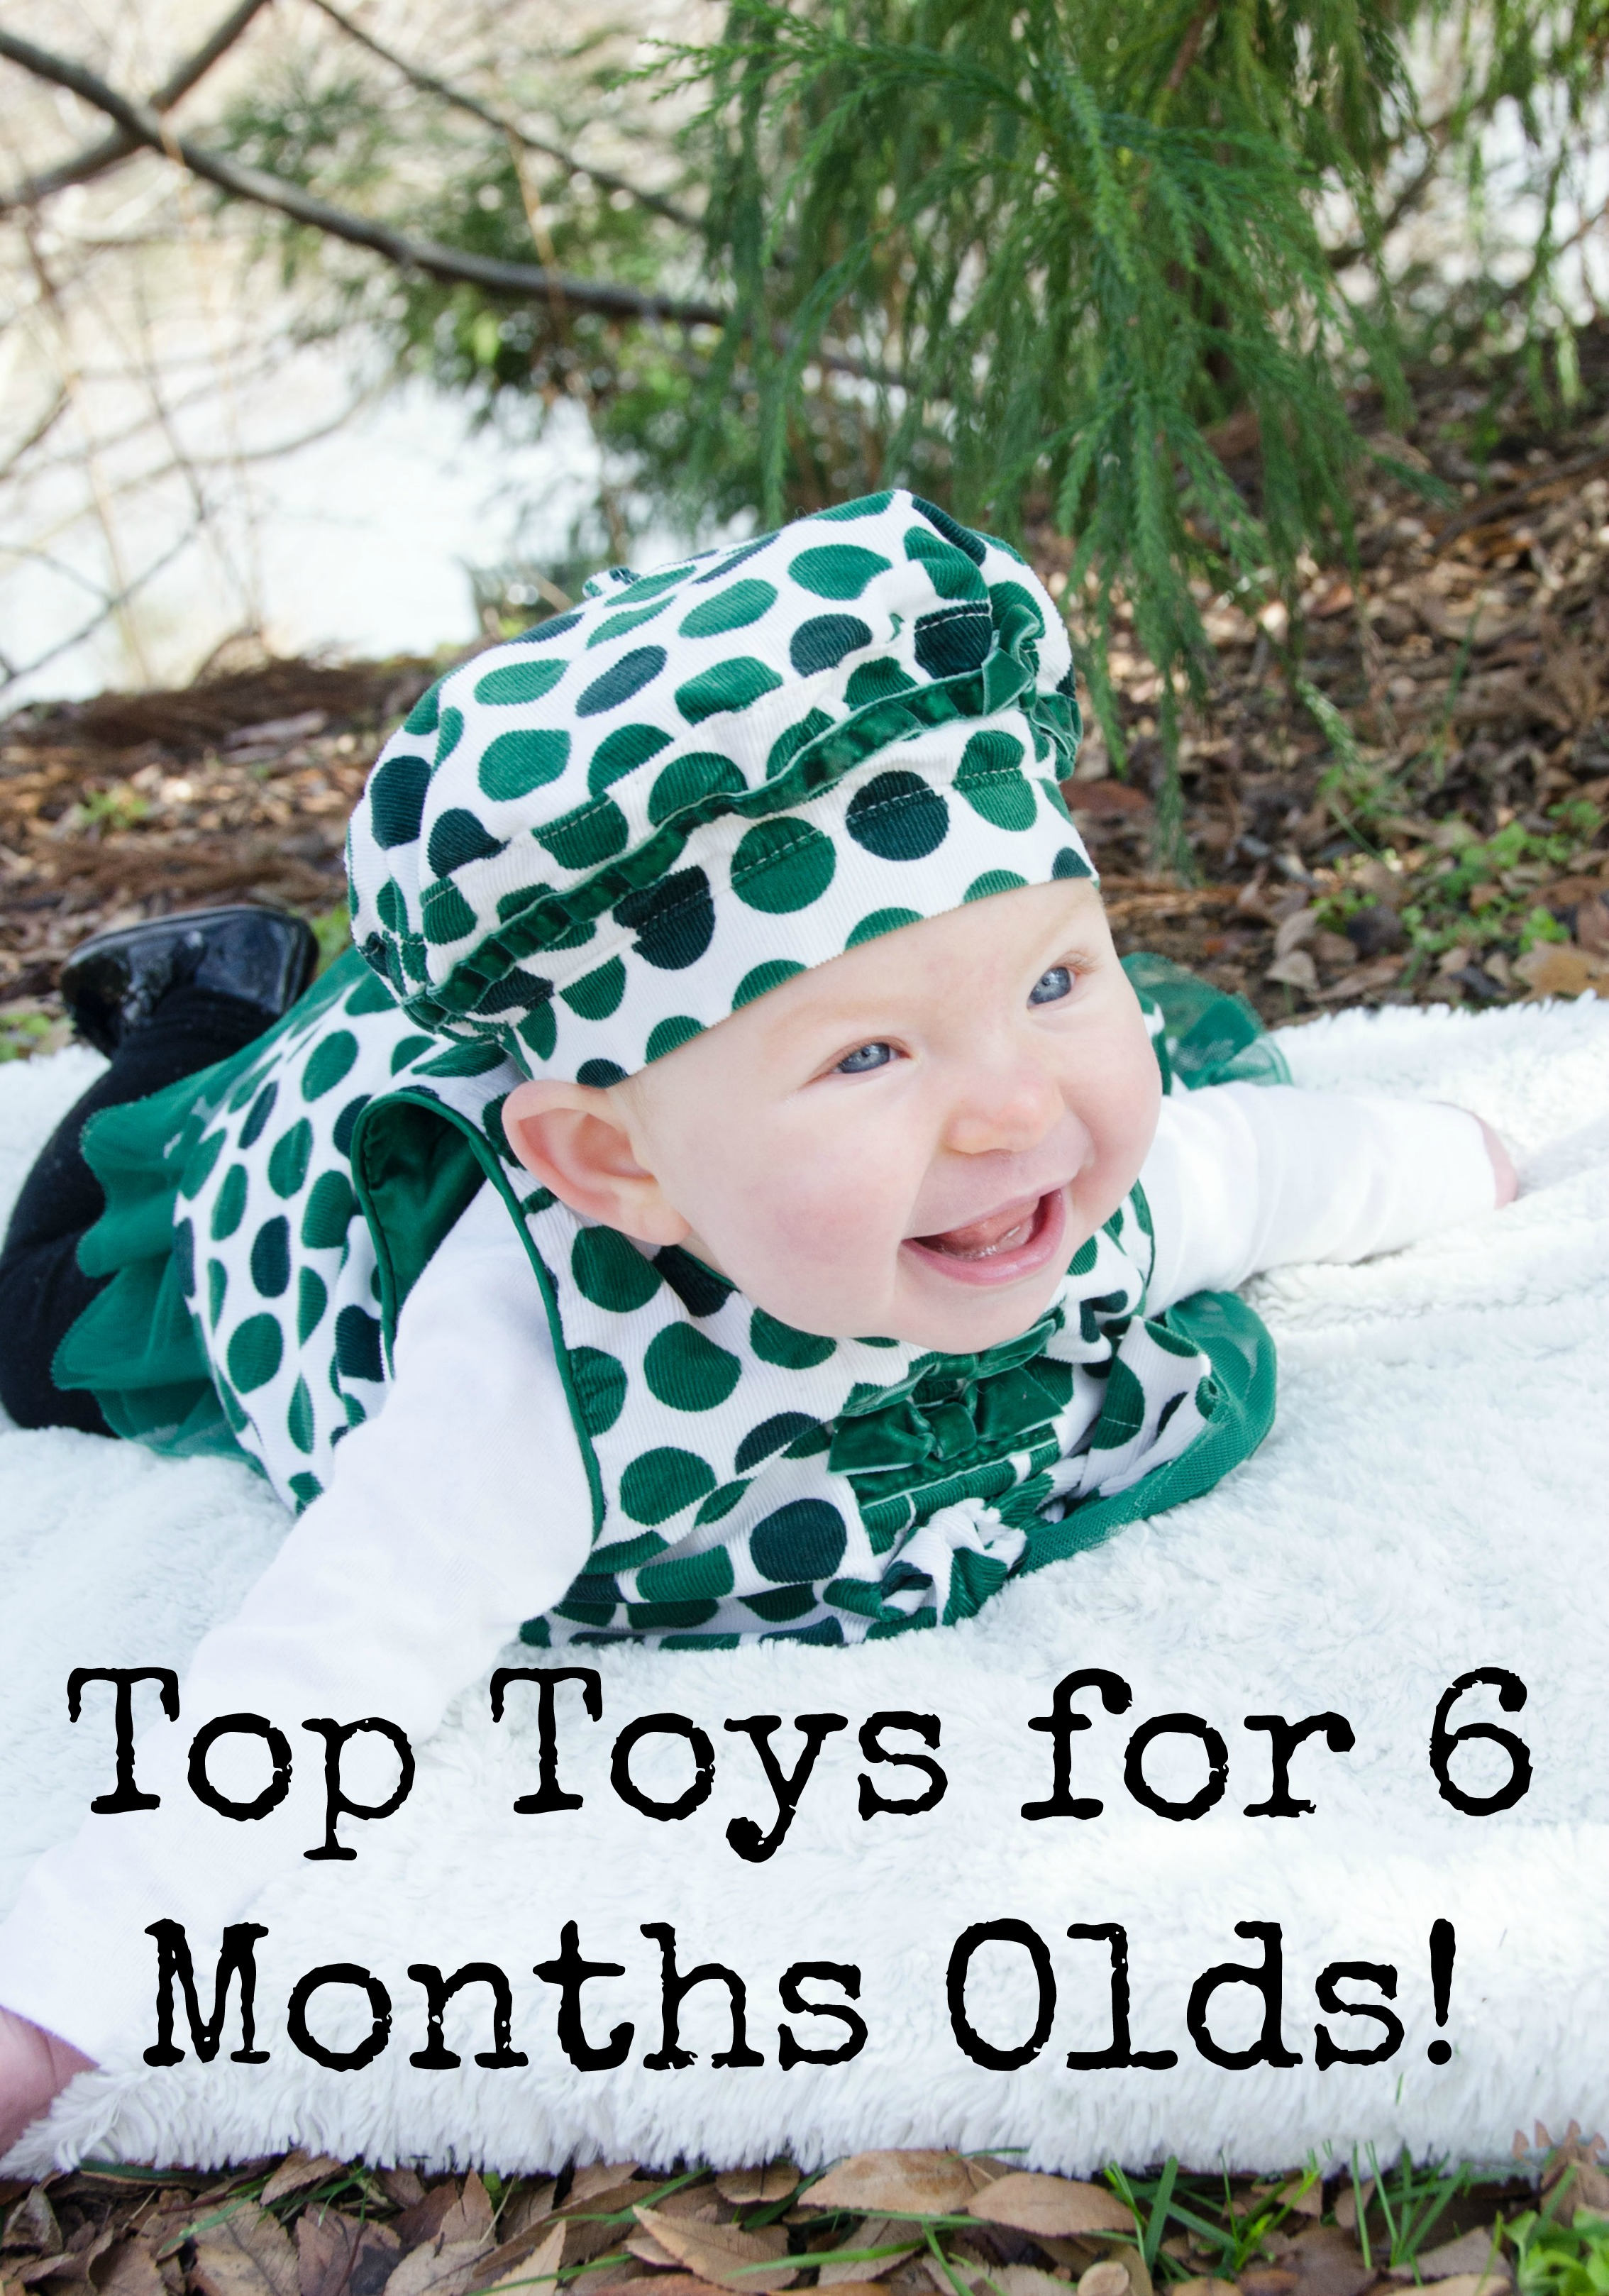 Top Toys For 12 Months : Top toys for month olds grassfed mama